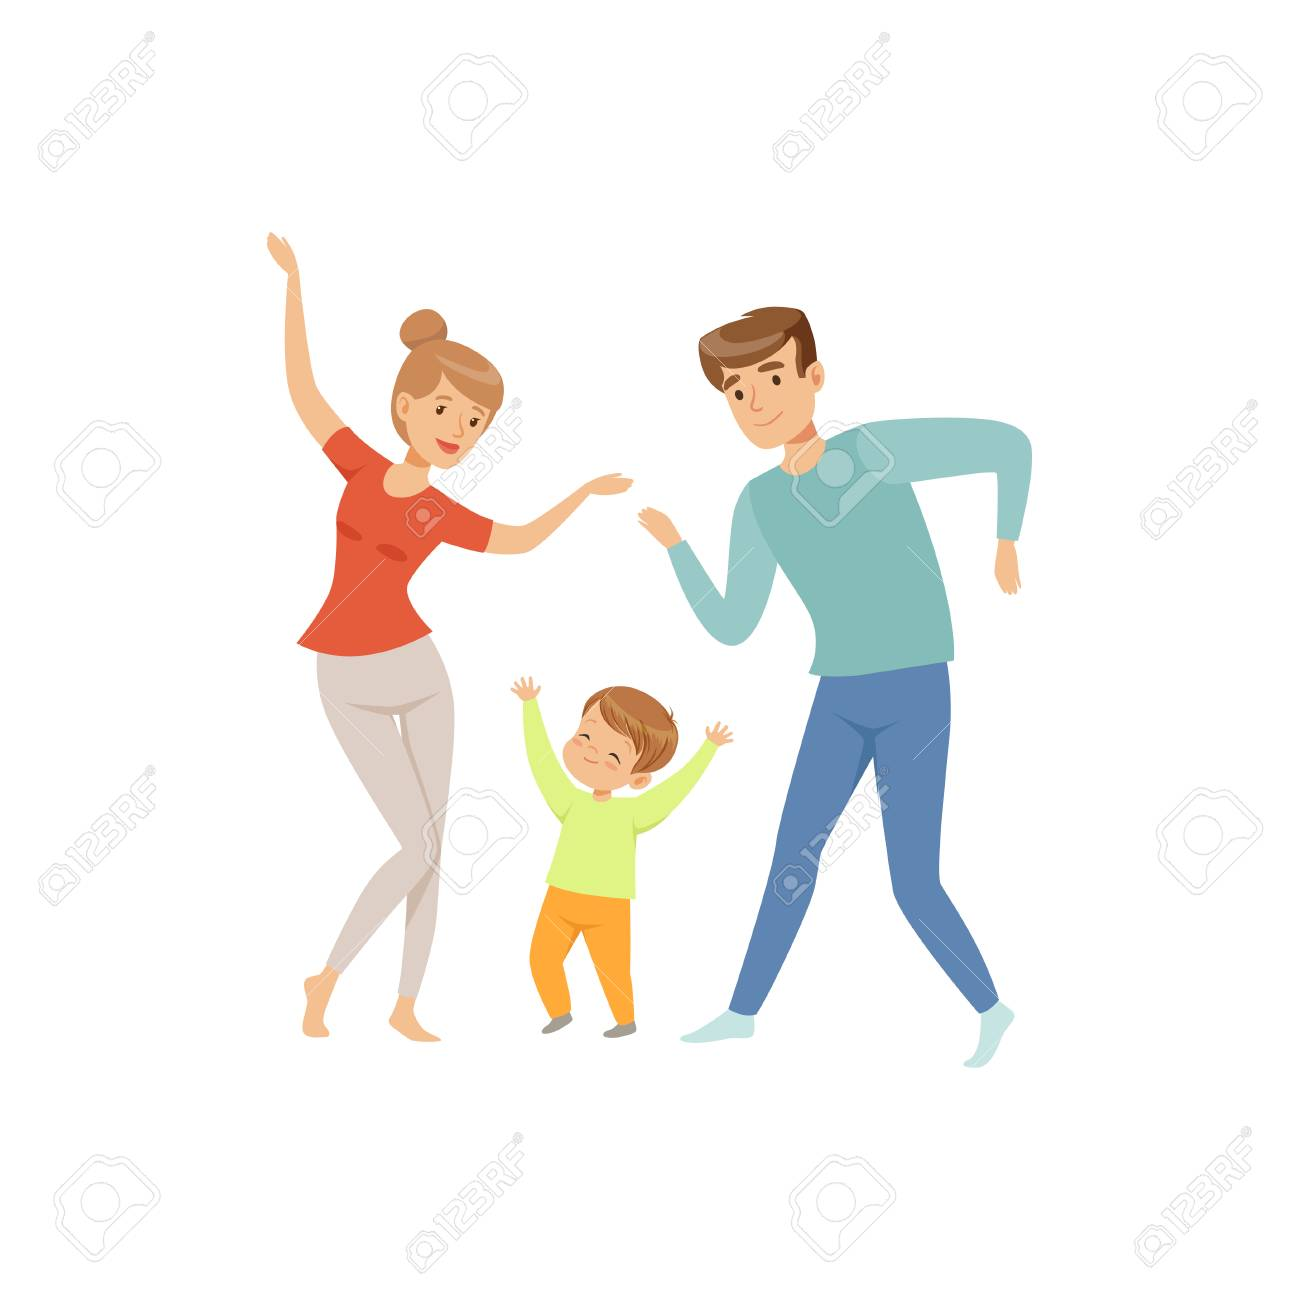 Mom and dad dancing with their little son, happy family and parenting concept vector Illustration on a white background - 103180826